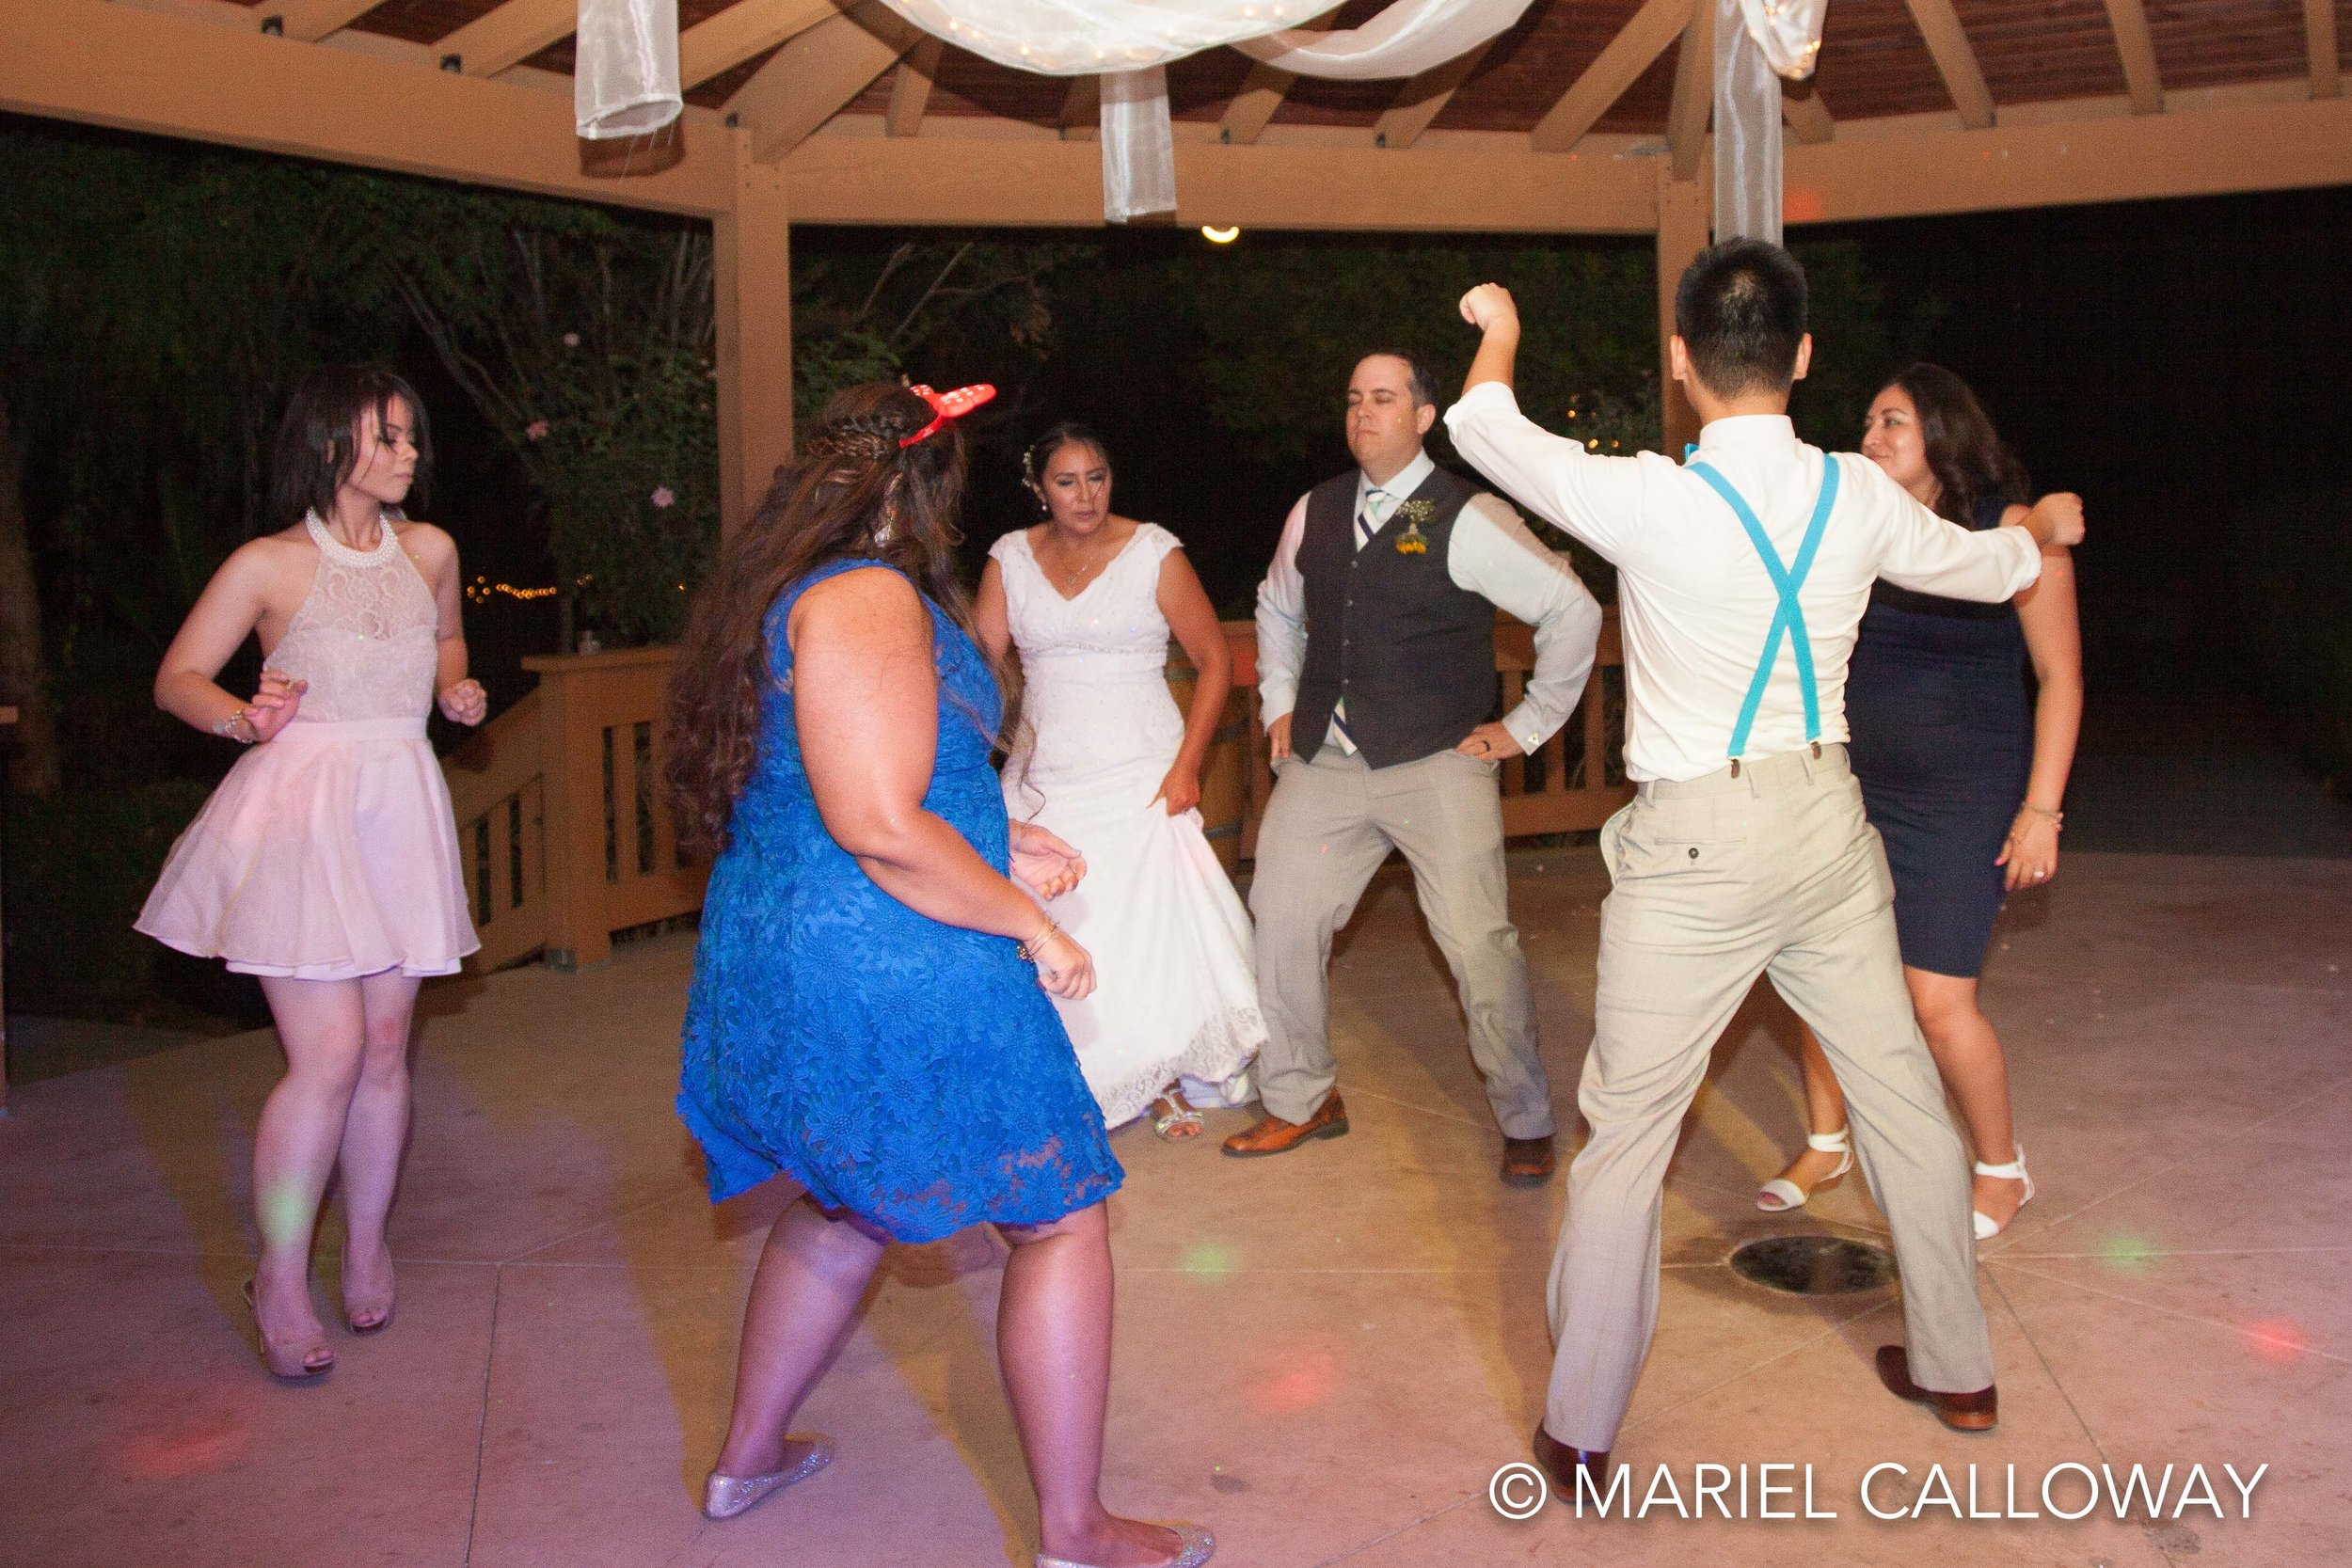 Mariel-Calloway-Wedding-Photographer-Los-Angeles-NatRory-32.jpg